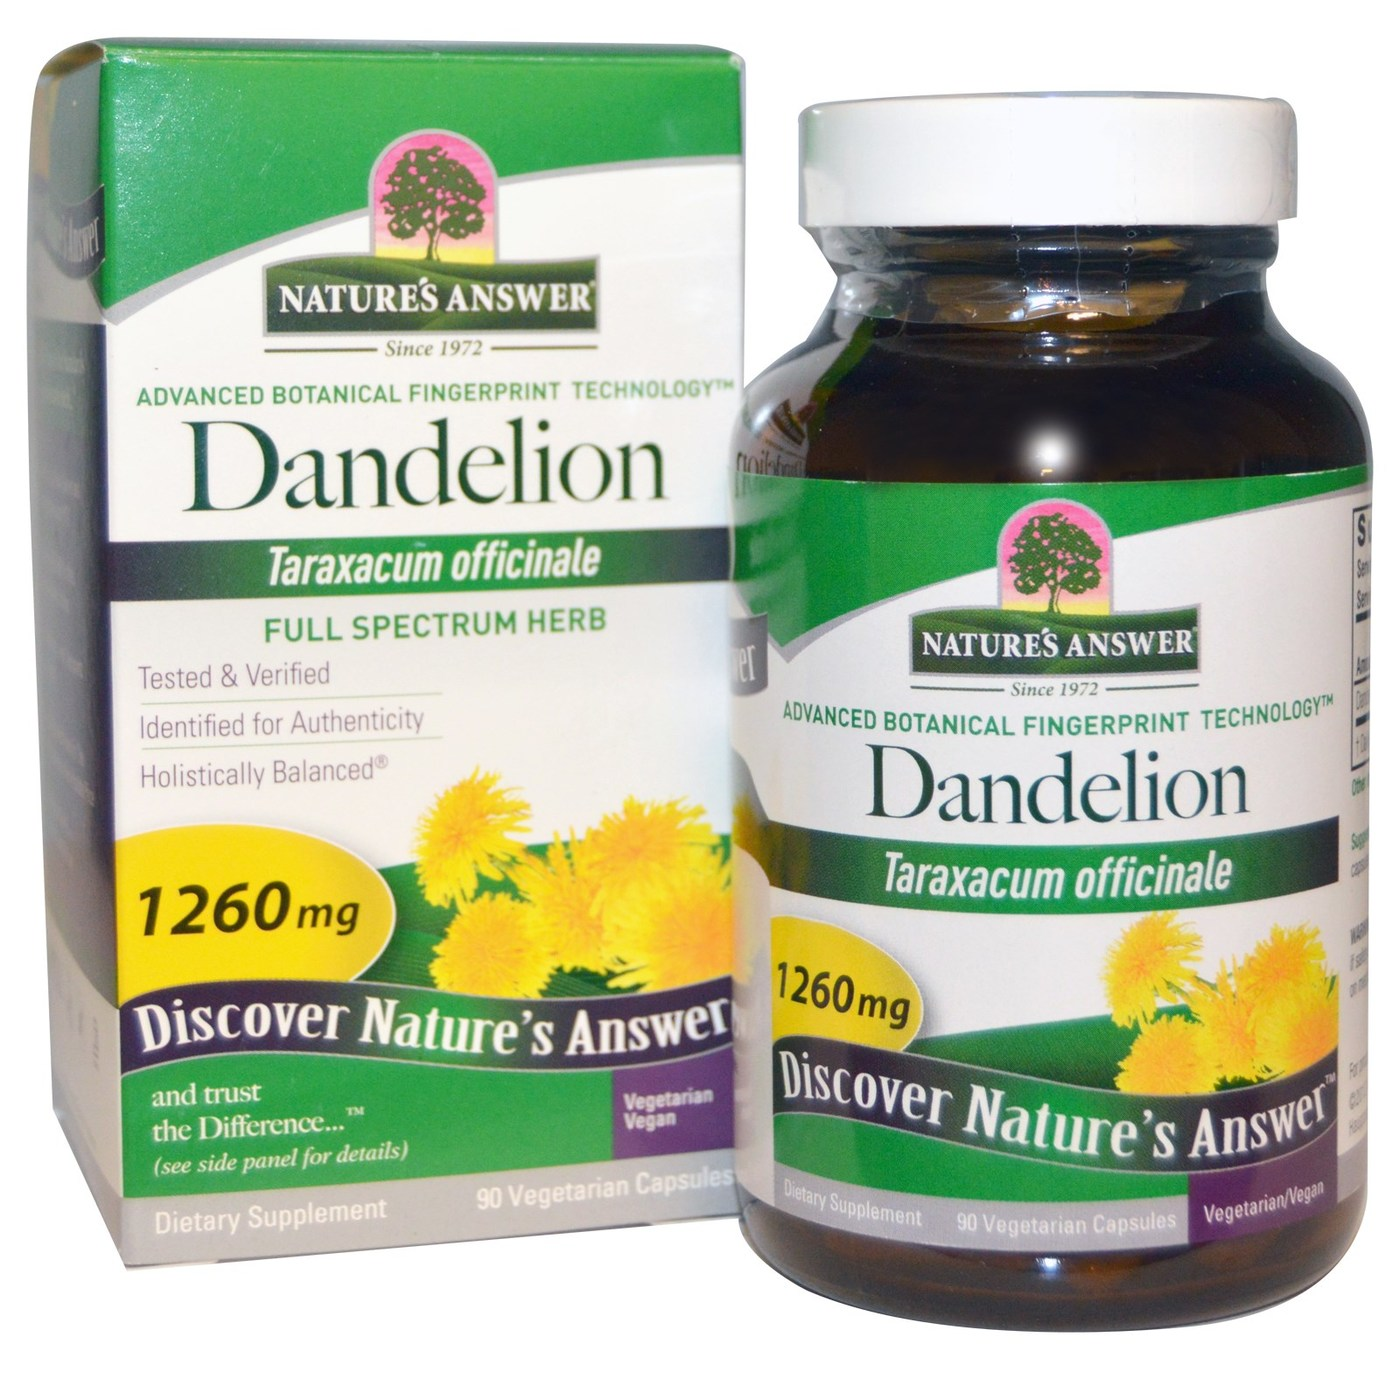 dandelion supplement for weight loss